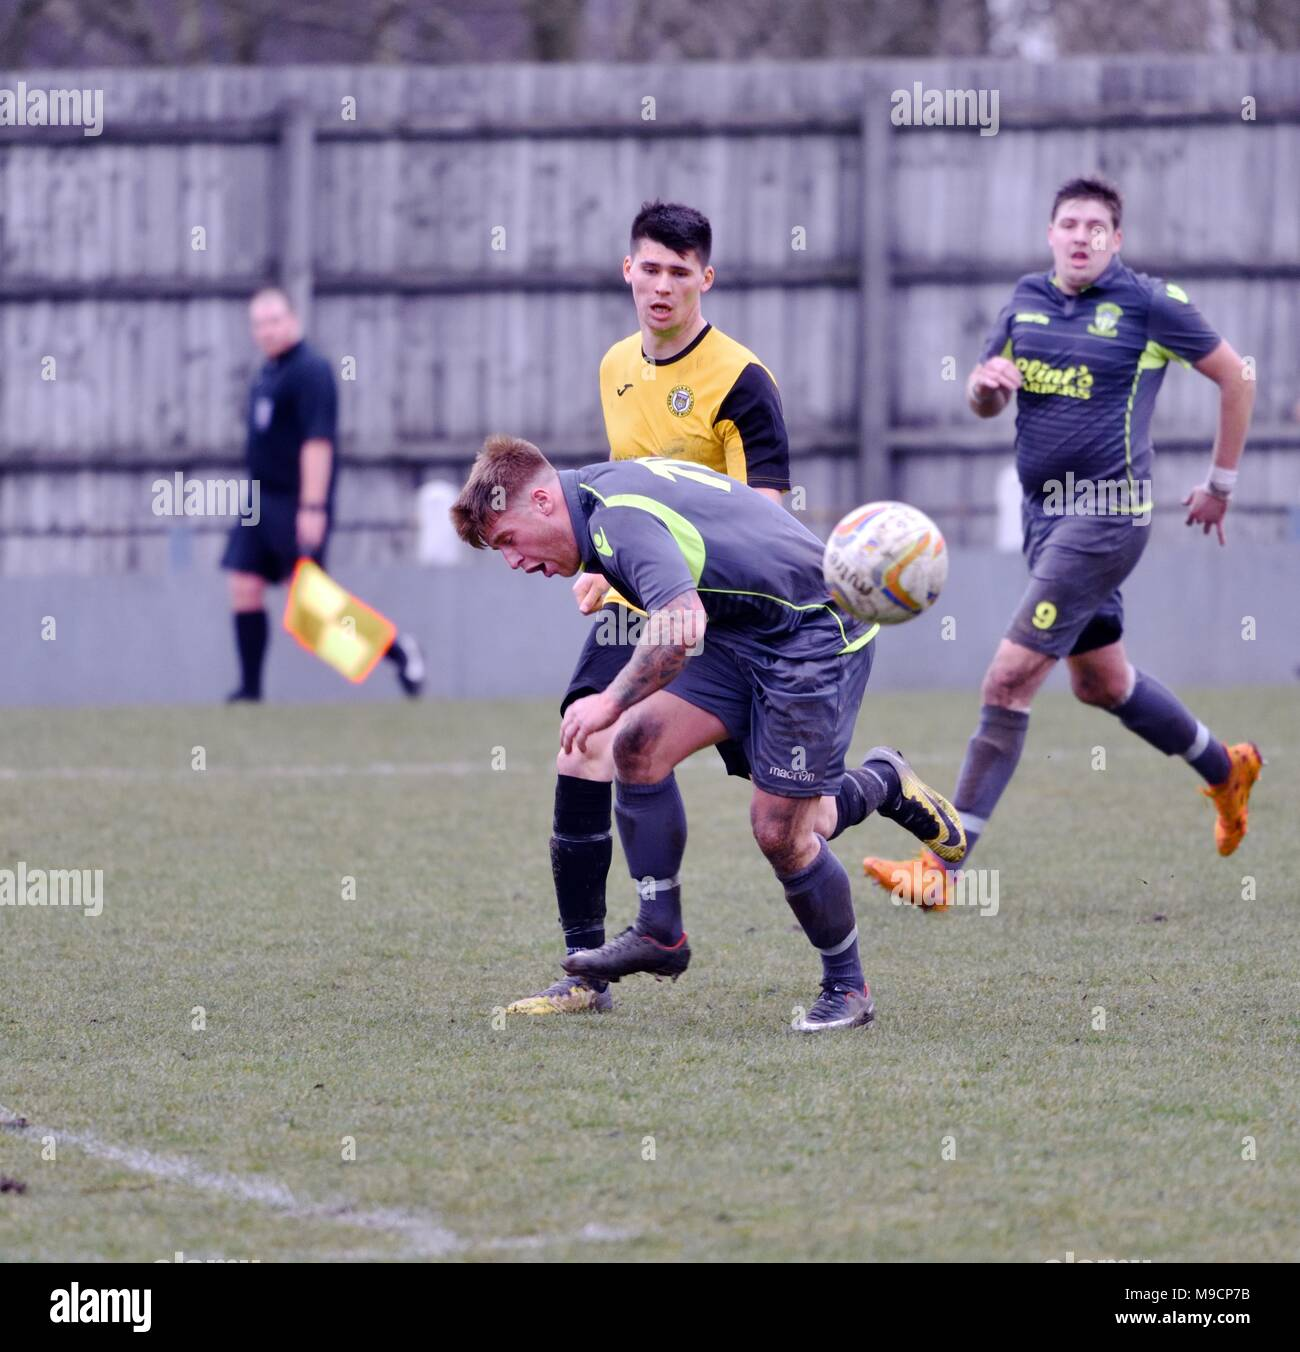 Action from the semi-professional football match between New Mills and Abbey Hulton United in the North-West Football League. - Stock Image